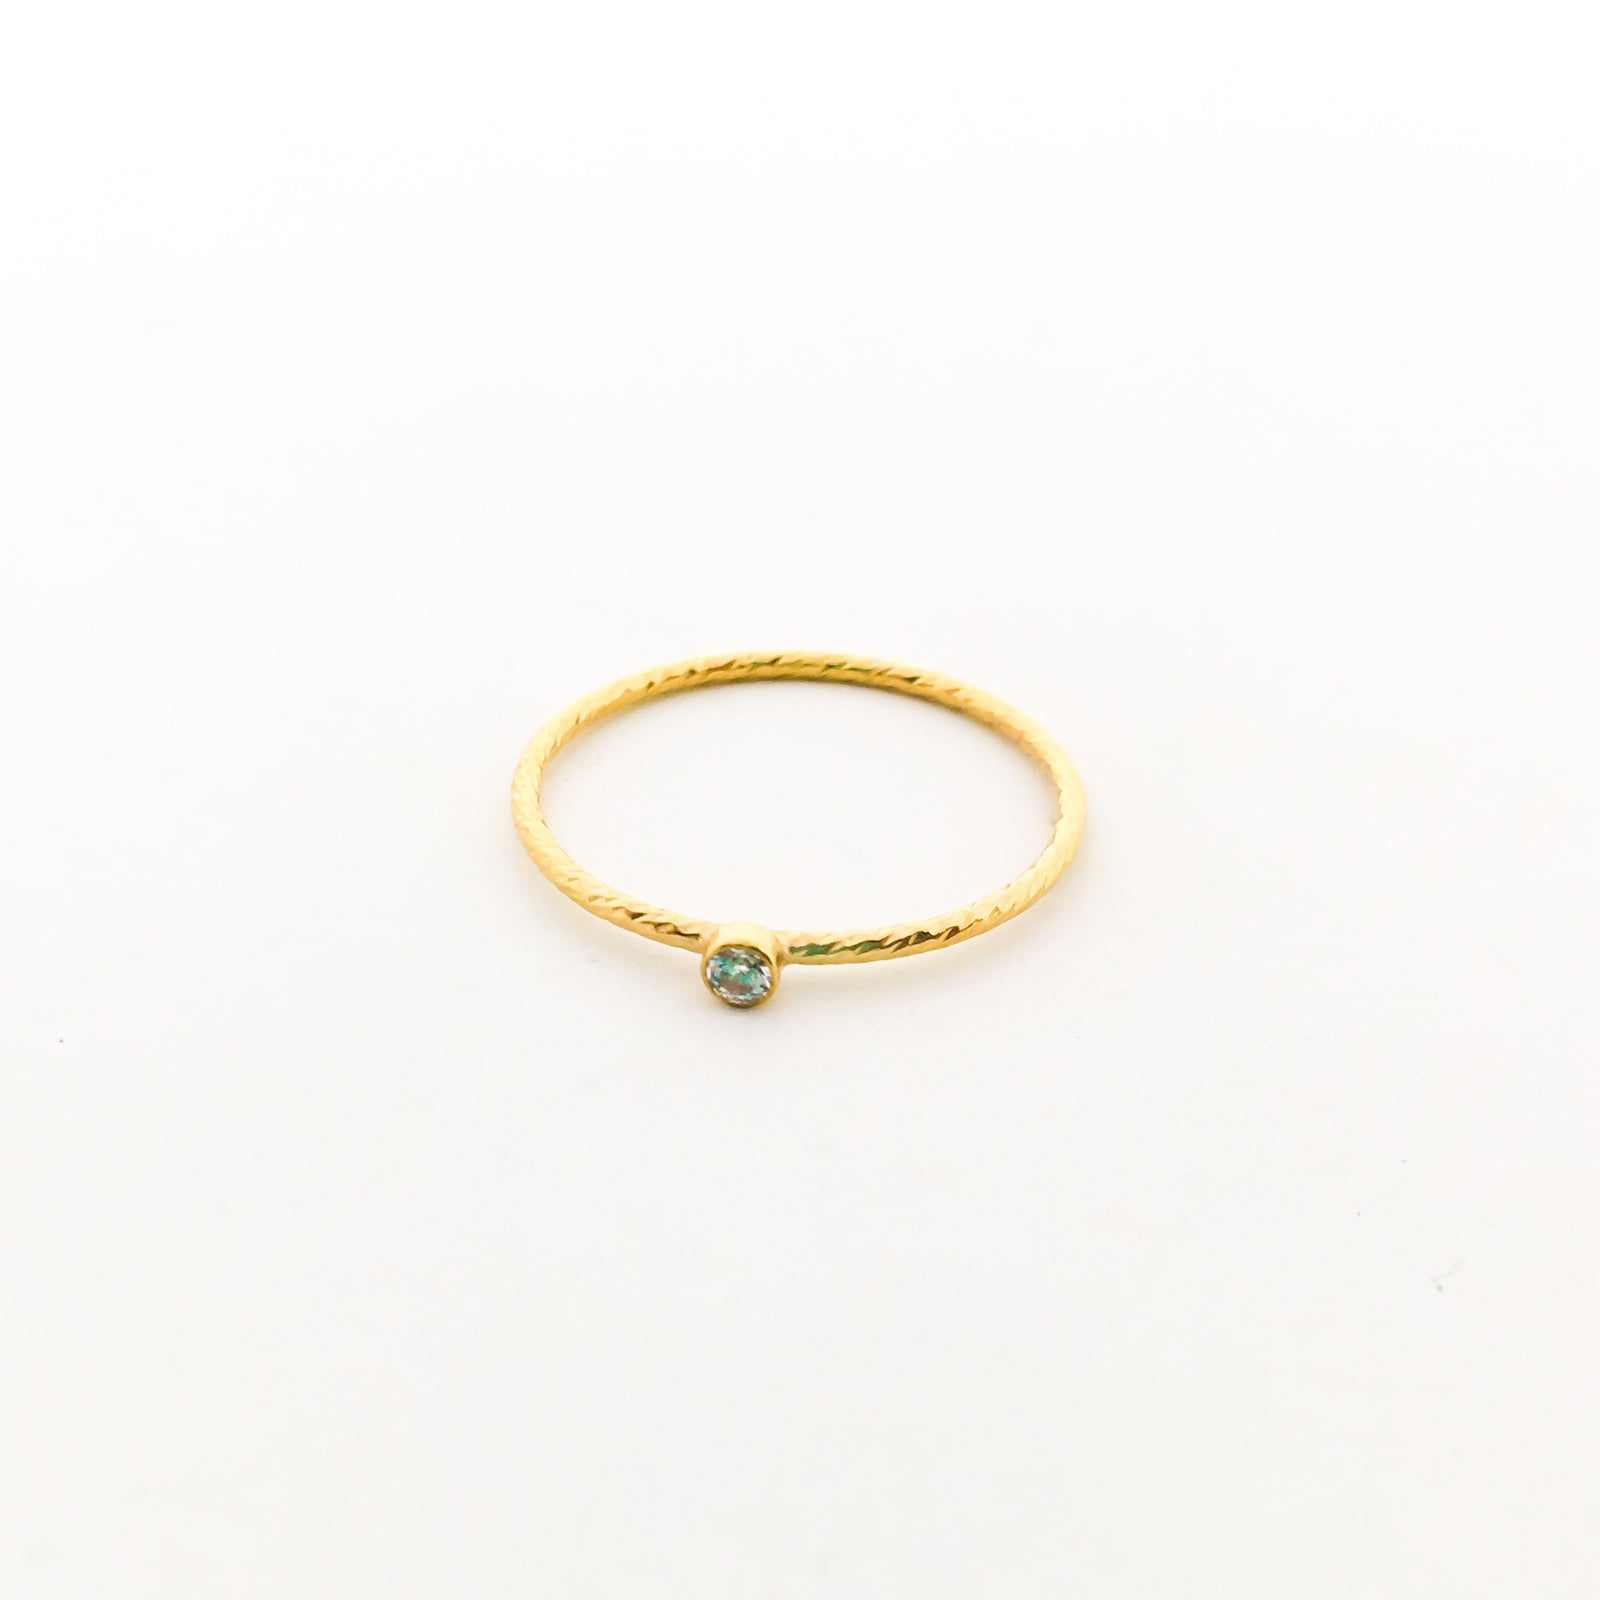 14K GOLD-FILLED TWISTED CUBIC ZIRCONIA STACKING RINGS | SIZE OPTIONS